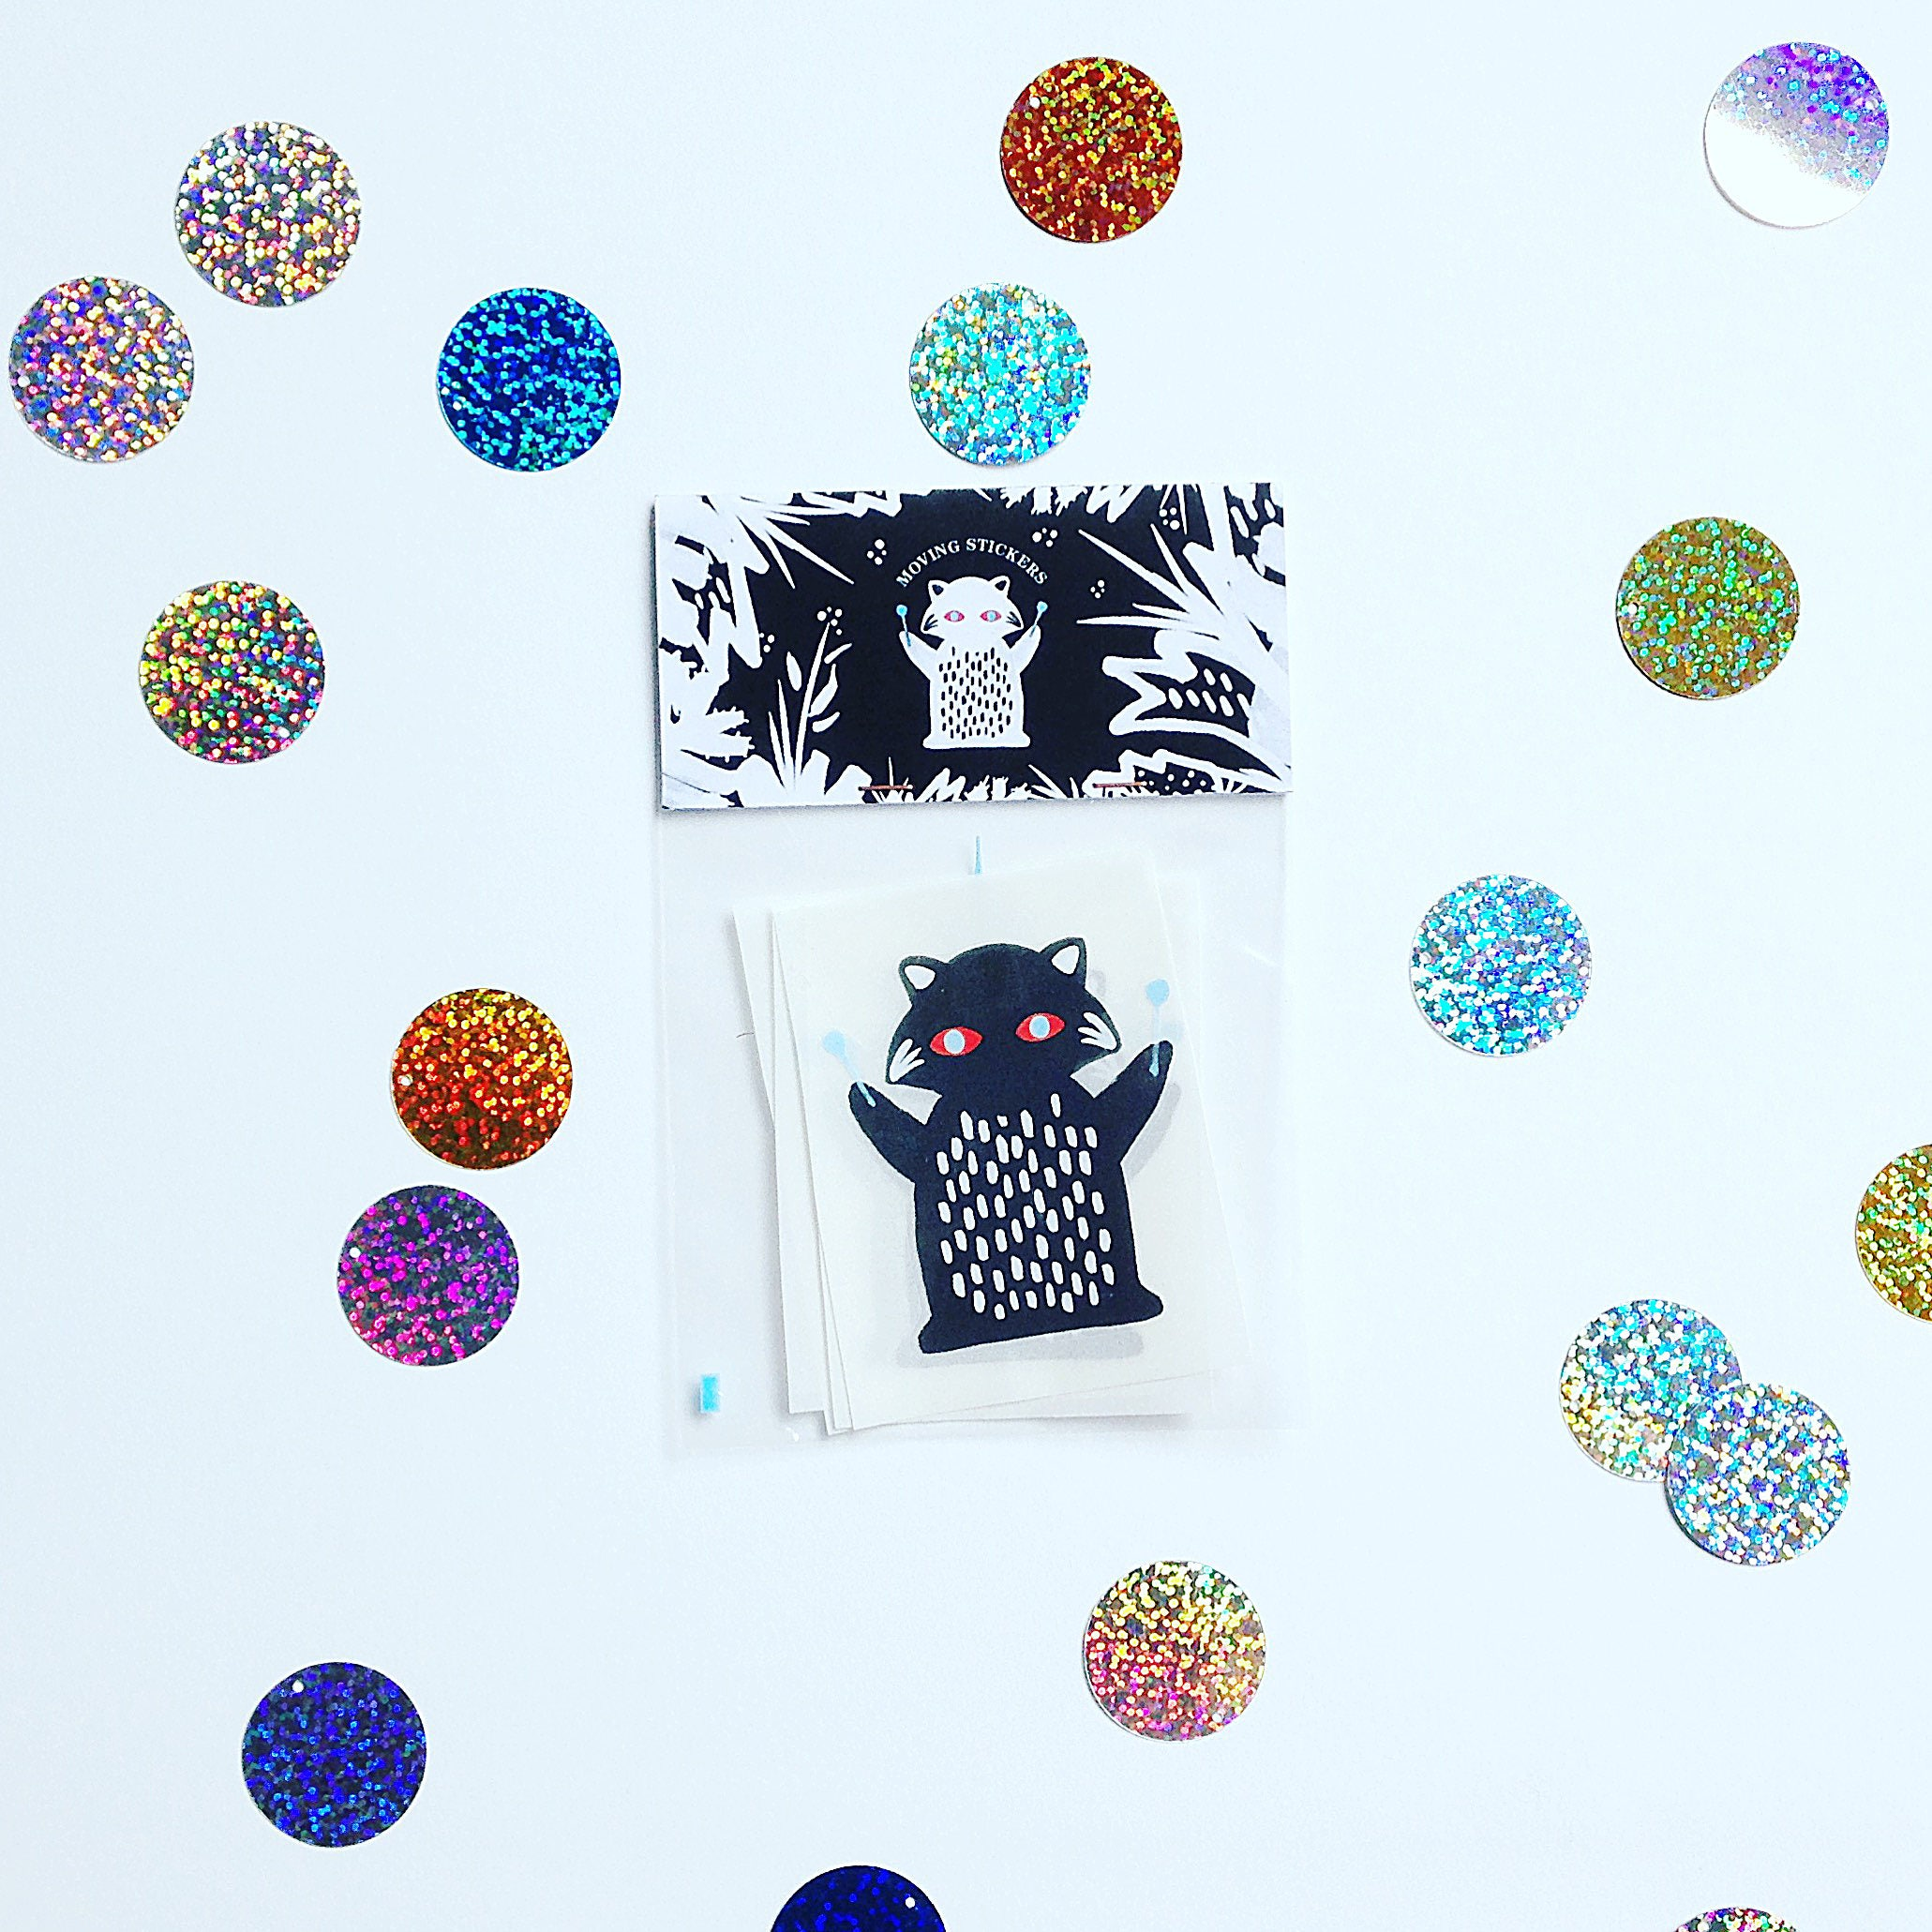 ANIMATED STICKERS PACK - 4 illustrated and animated stickers of ...